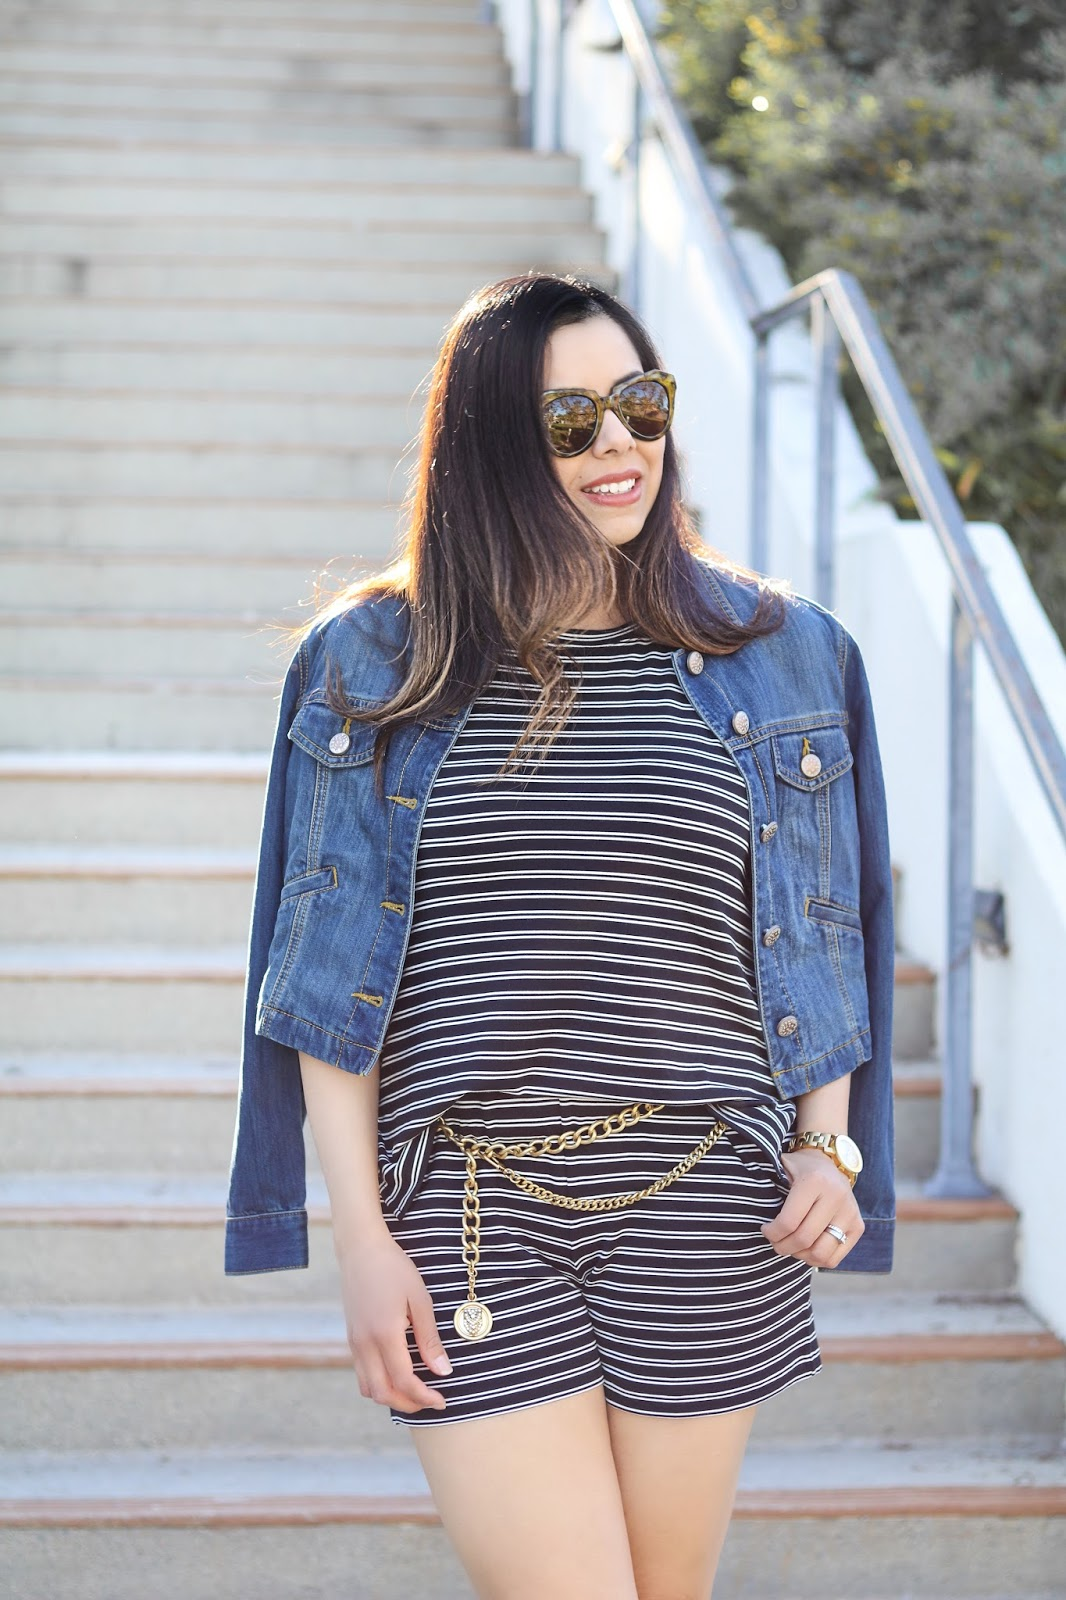 cabi denim jacket, karen walker sunglasses, striped playsuit